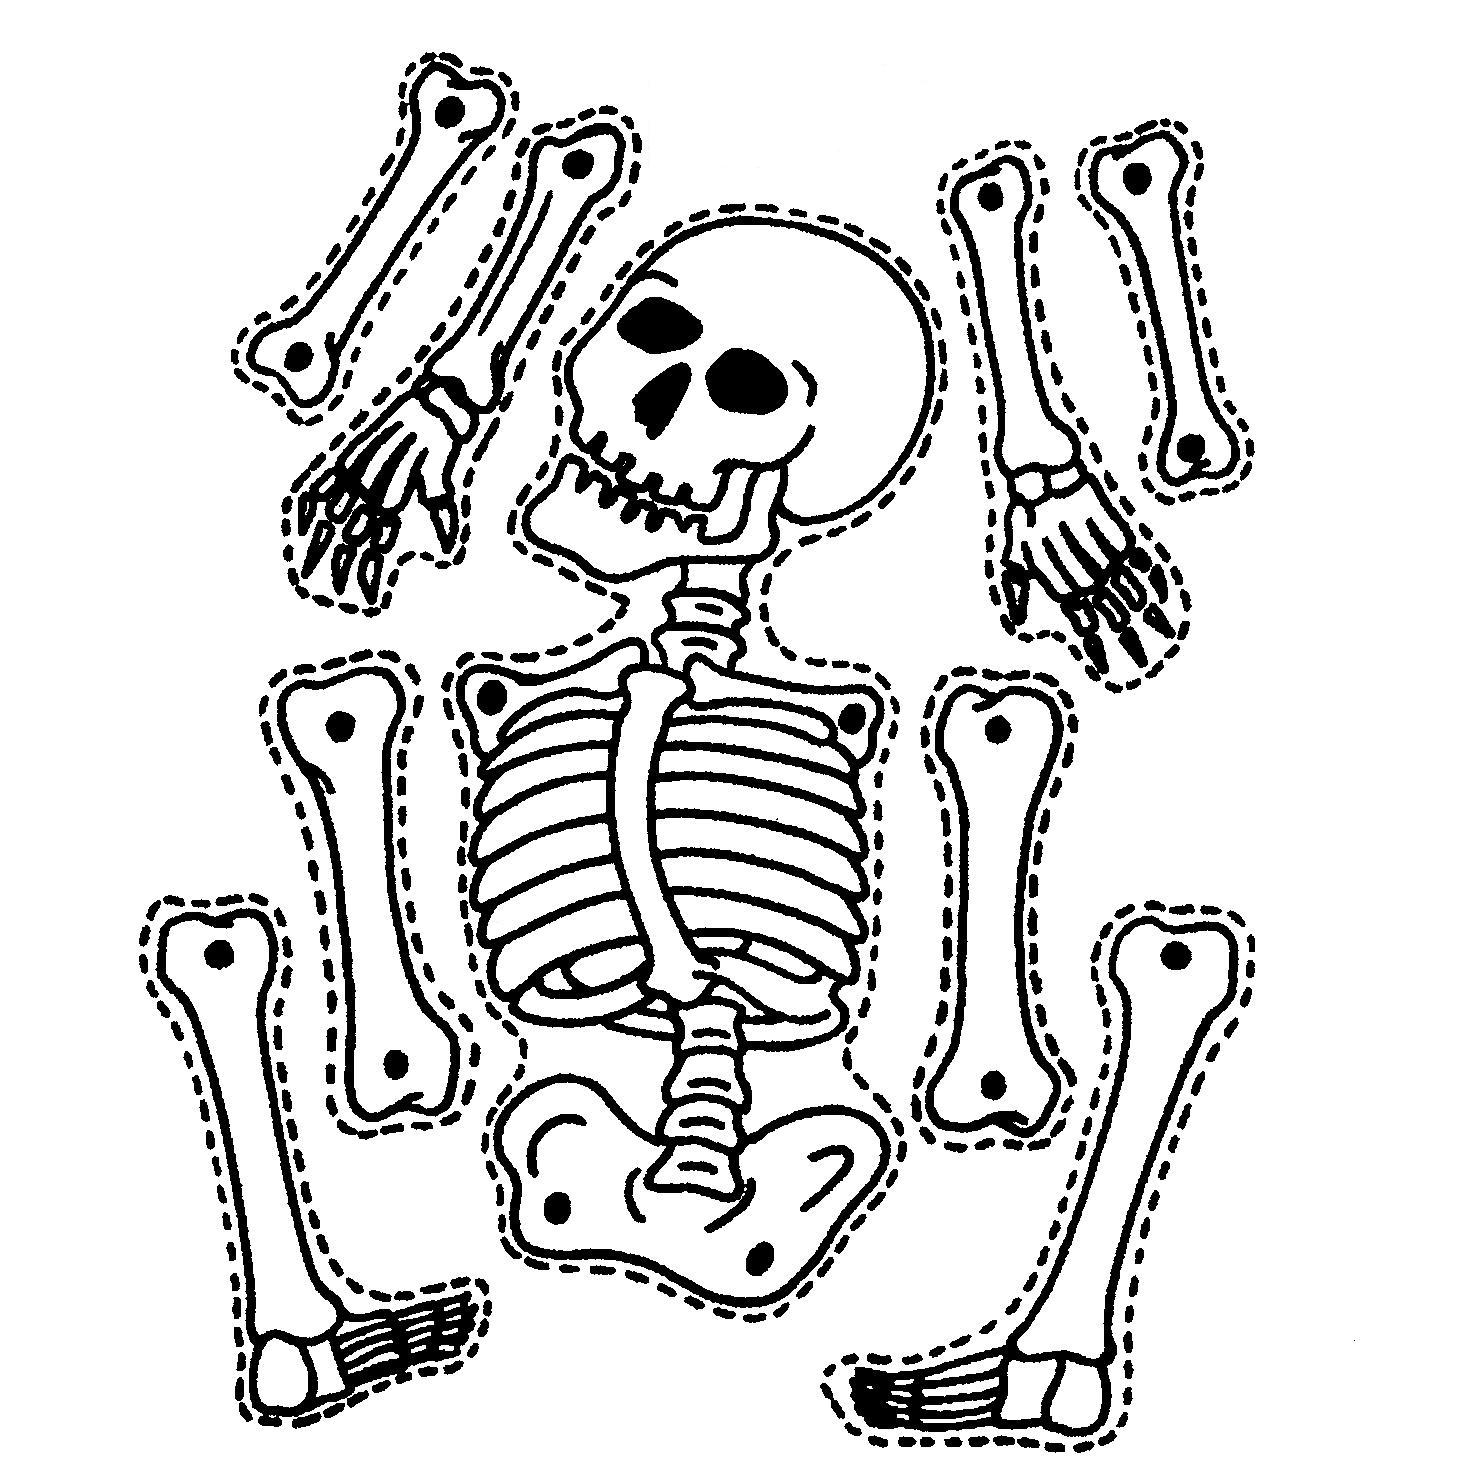 dry bones skeleton puppet template for ezekiel teaching ideas pinterest teaching ideas and school - Halloween Activities To Print